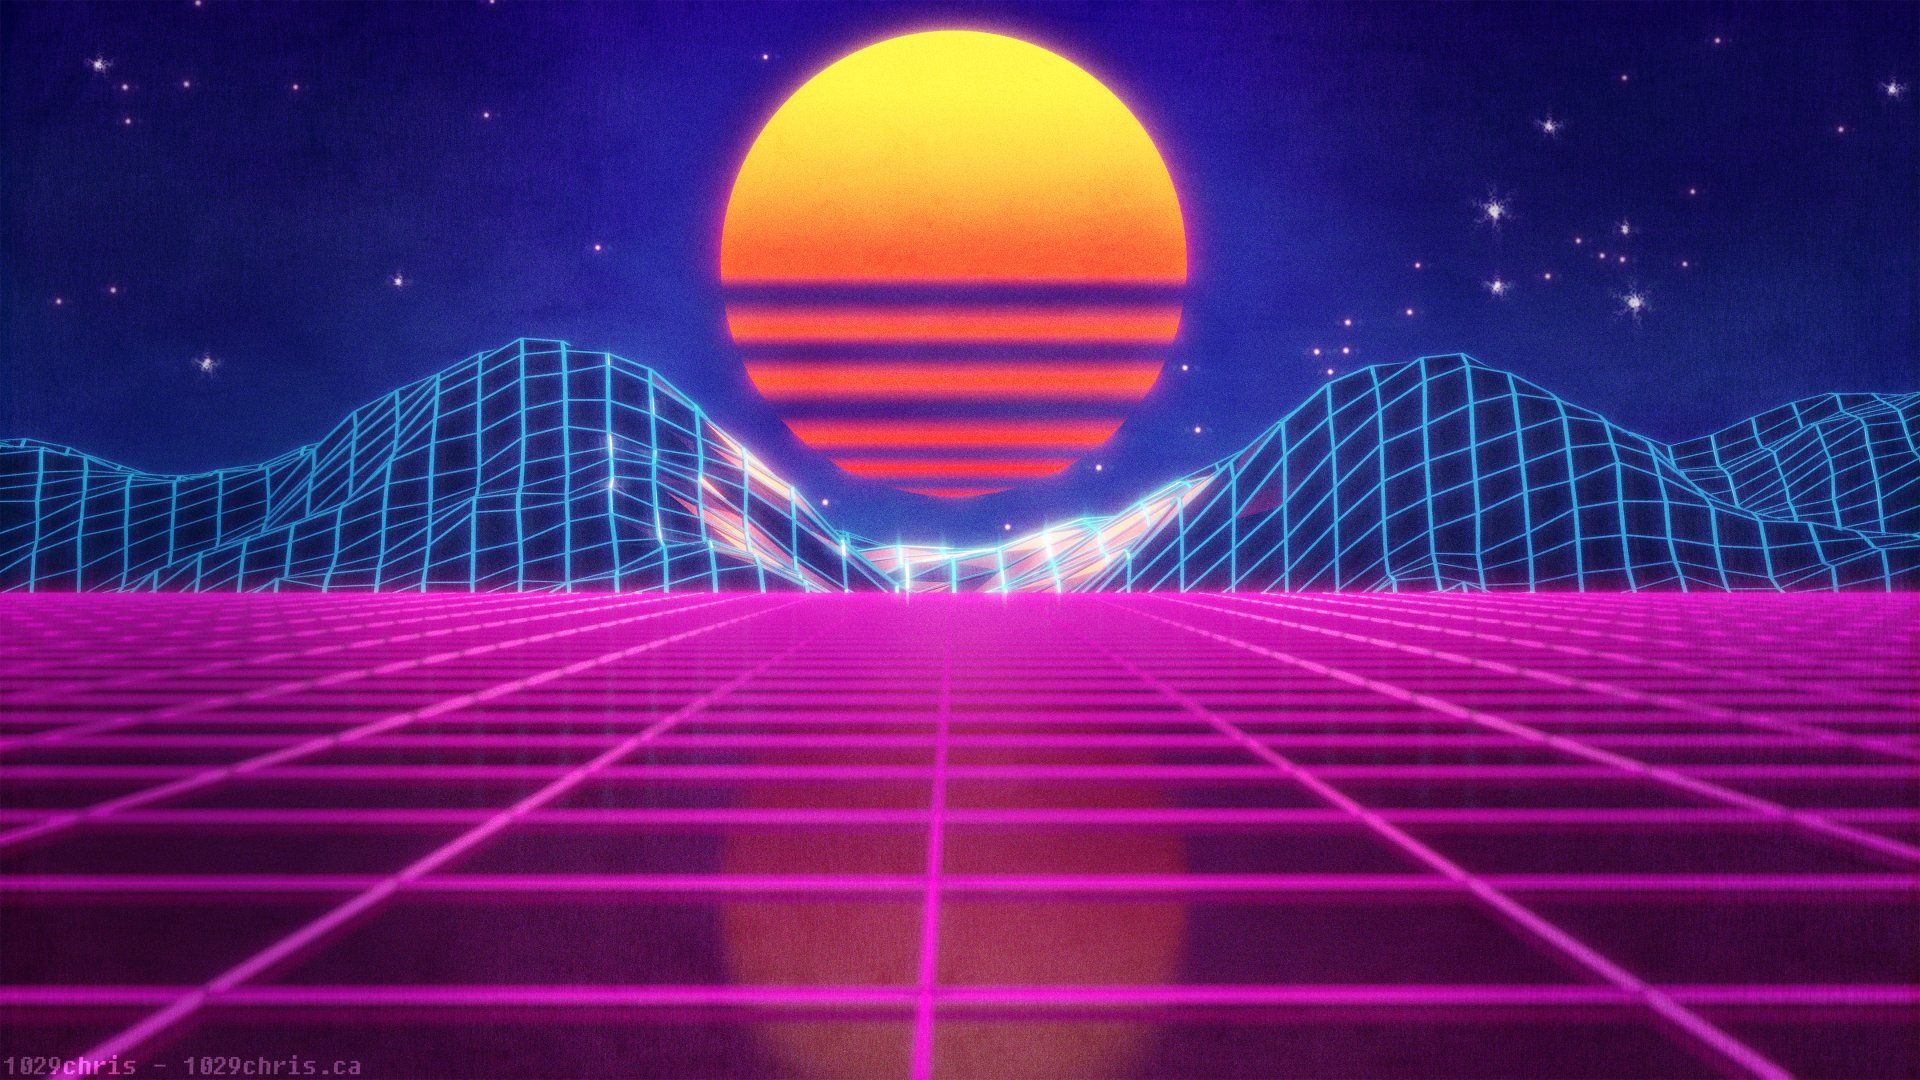 4320x2430 Retro Wave Wallpaper Background Image View Download Comment And Rate Wallpaper Abyss In 2020 Background Images Wallpapers Neon Wallpaper Retro Waves